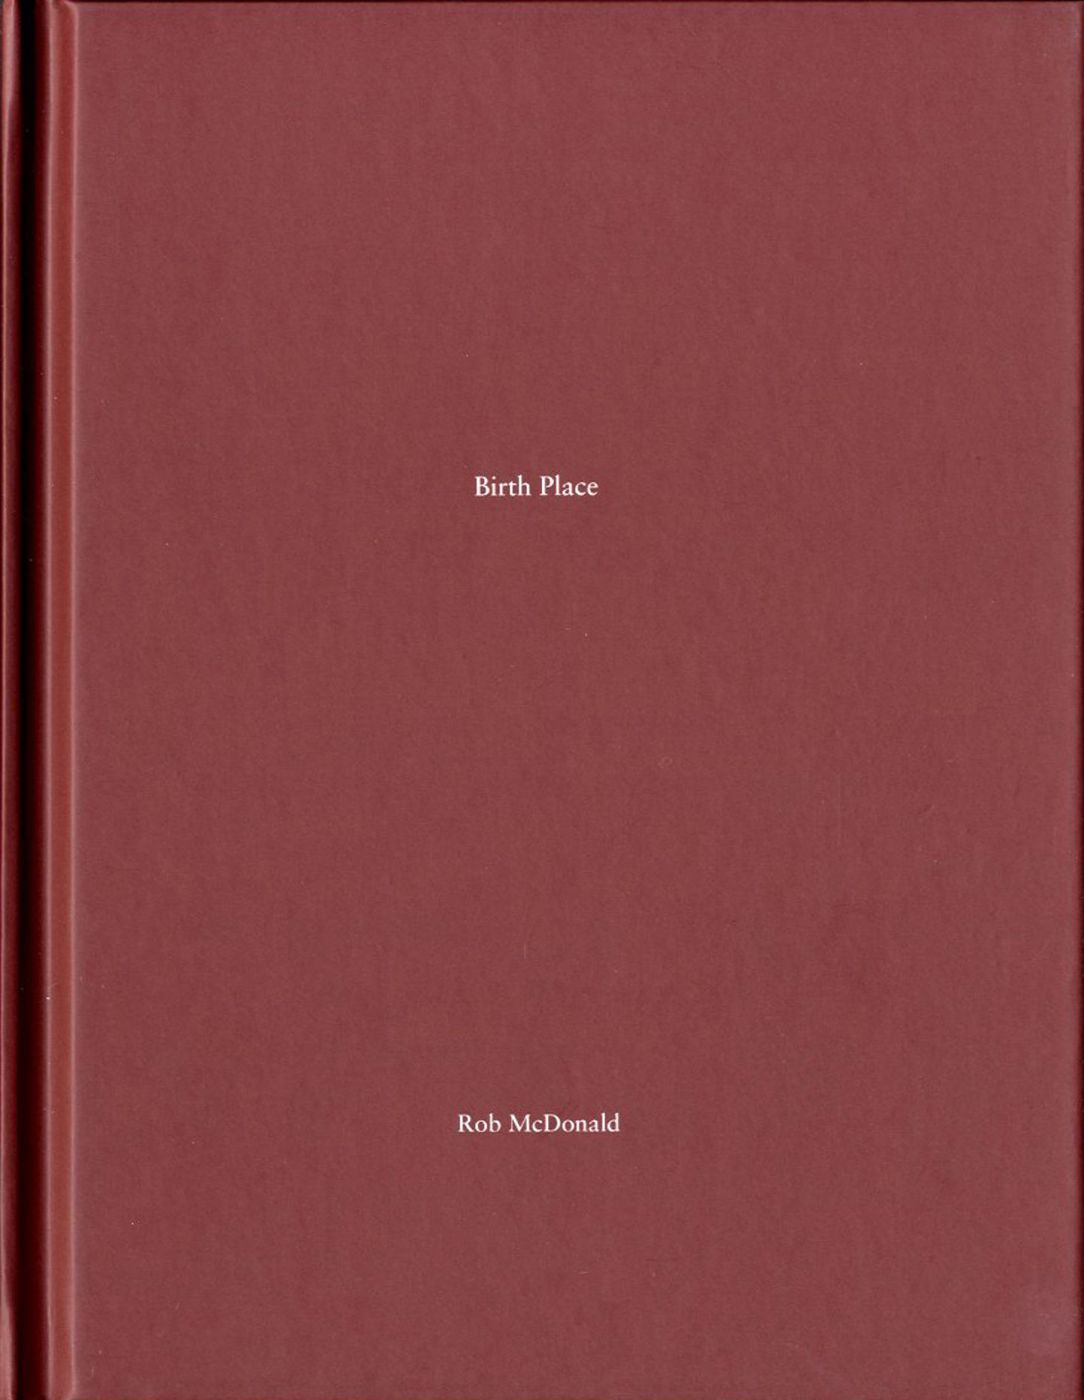 Rob McDonald: Birth Place (One Picture Book #50), Limited Edition (with Print)